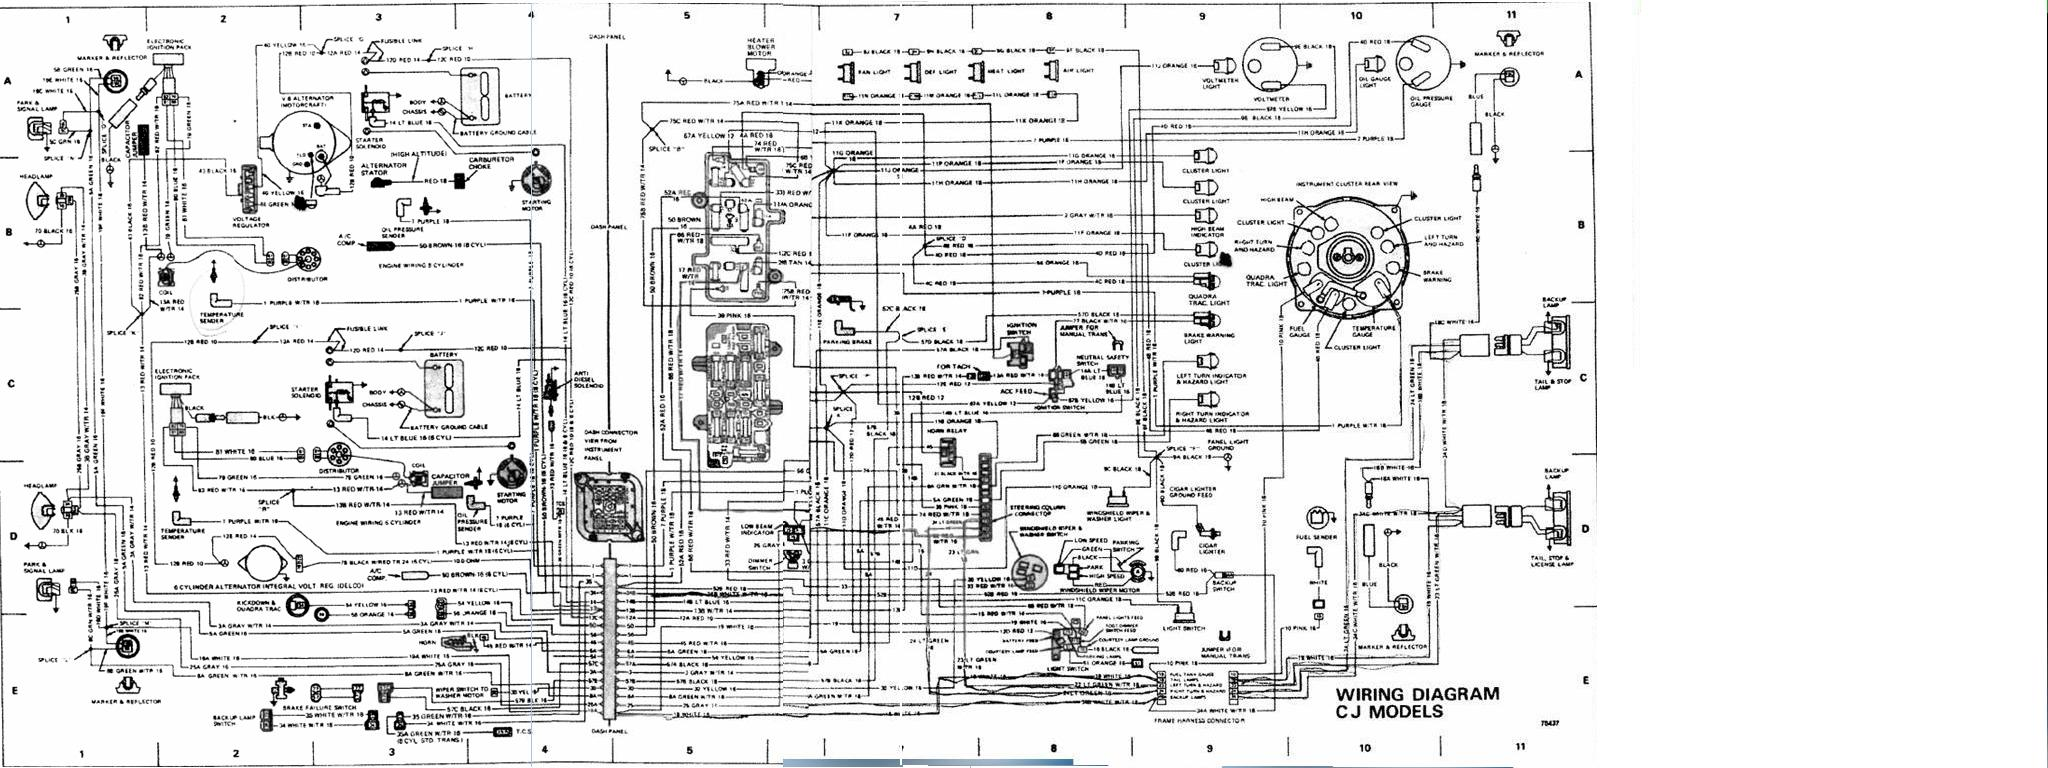 83 cj7 wiring diagram product wiring diagrams u2022 rh genesisventures us 83 CJ7 Coil Wiring Diagram Jeep CJ Wiring-Diagram